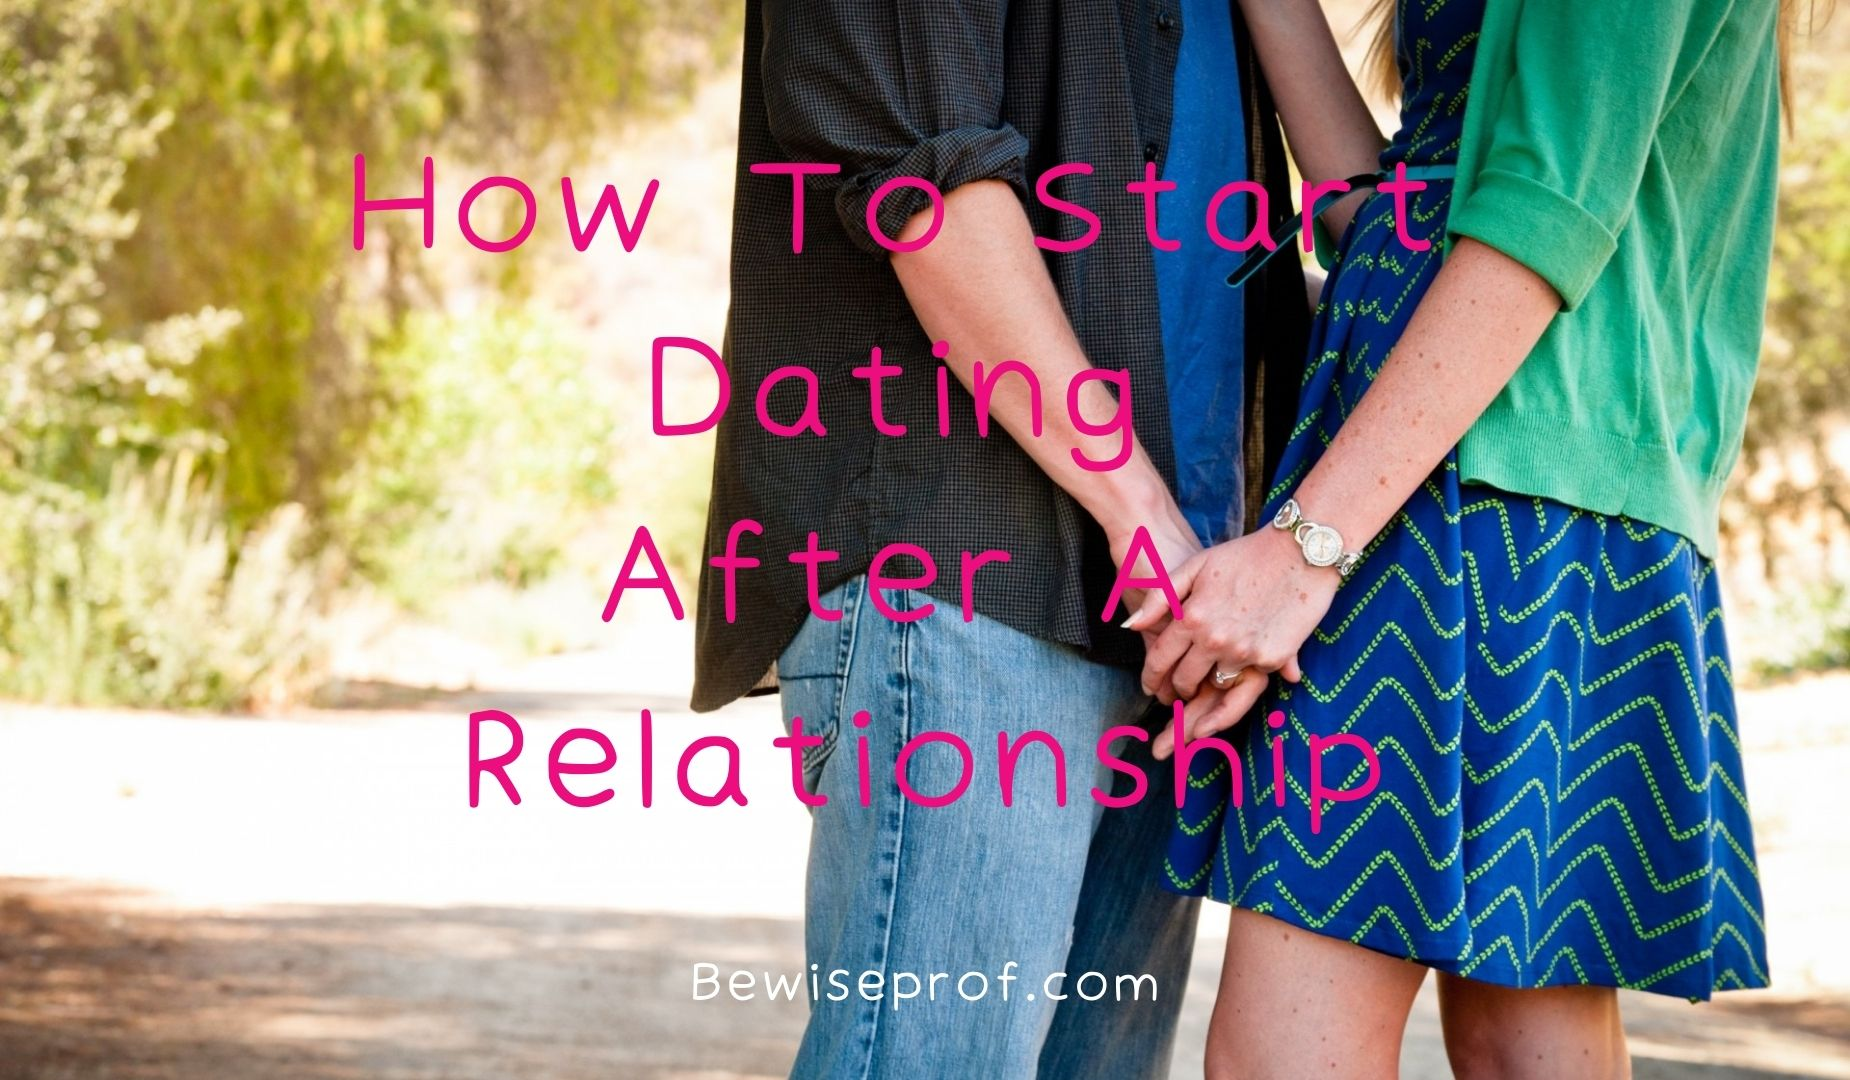 How To Start Dating After A Relationship